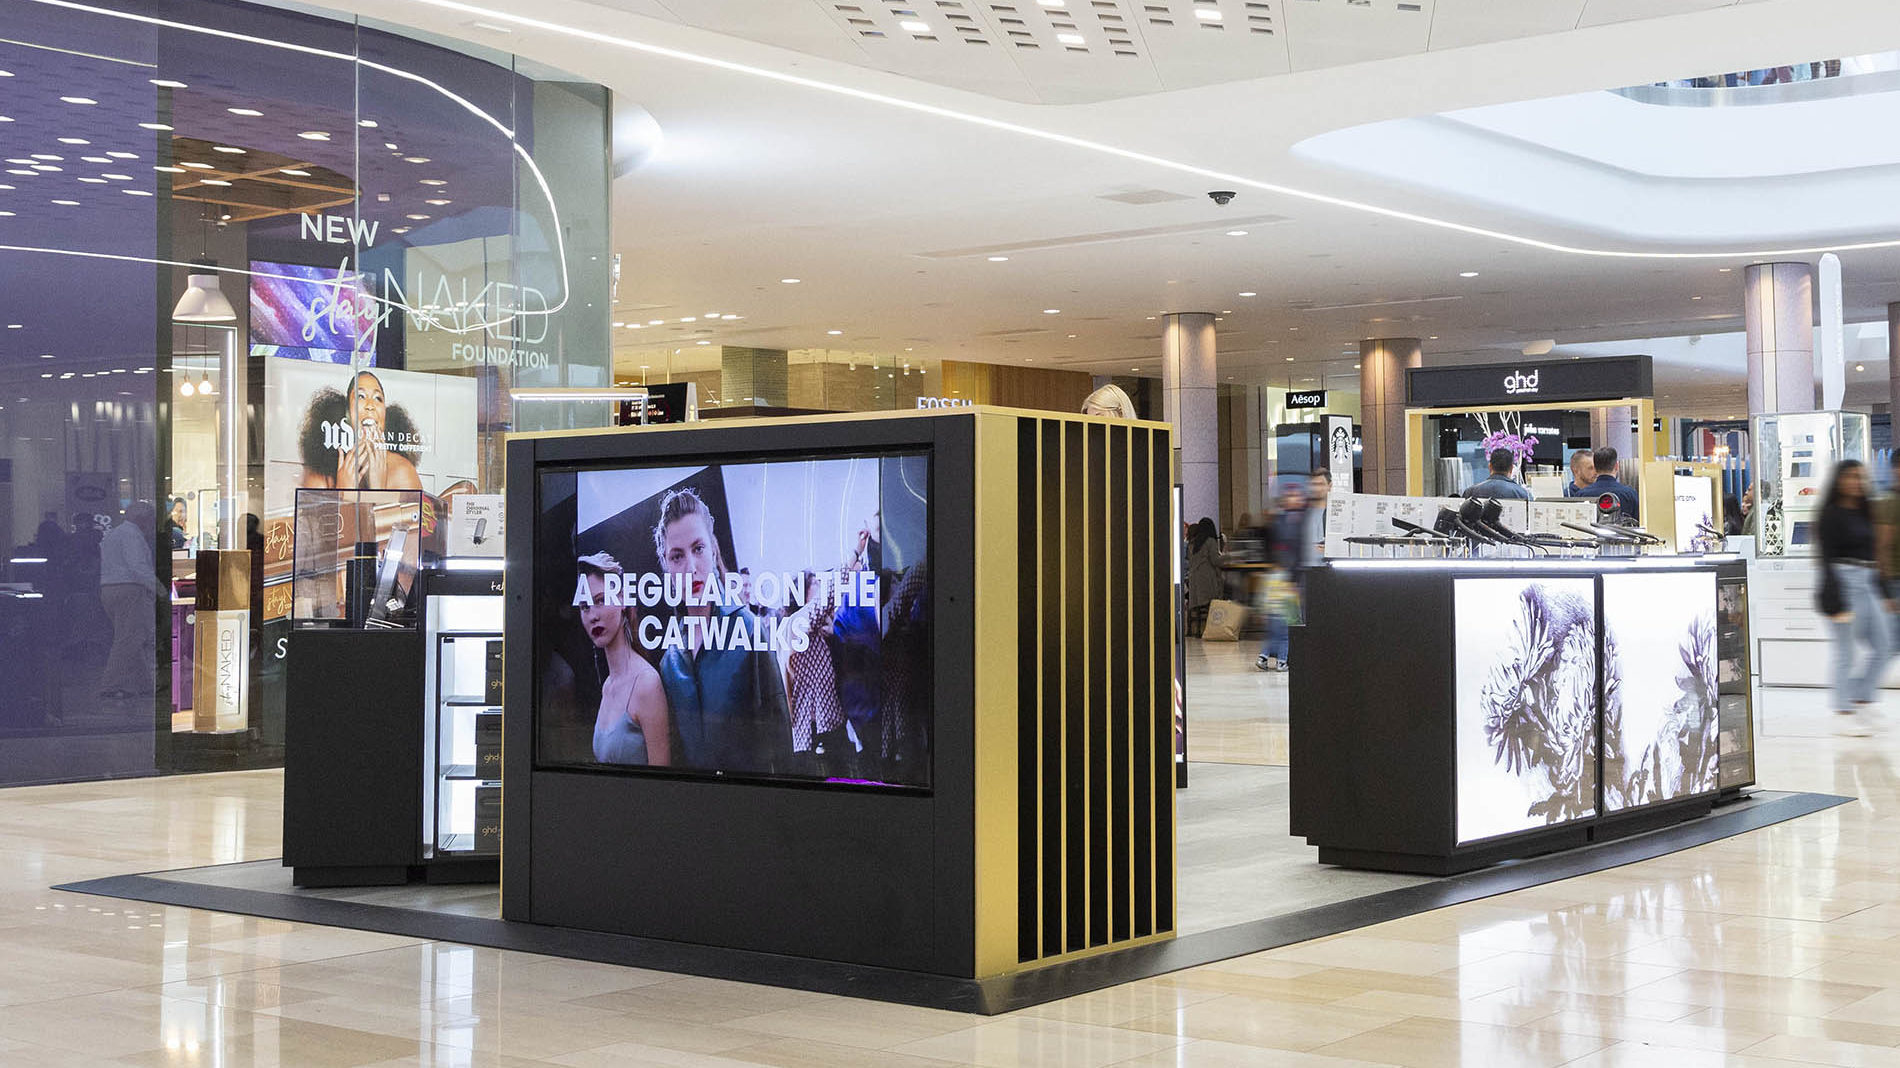 GHD concession in Westfield London with digital screens